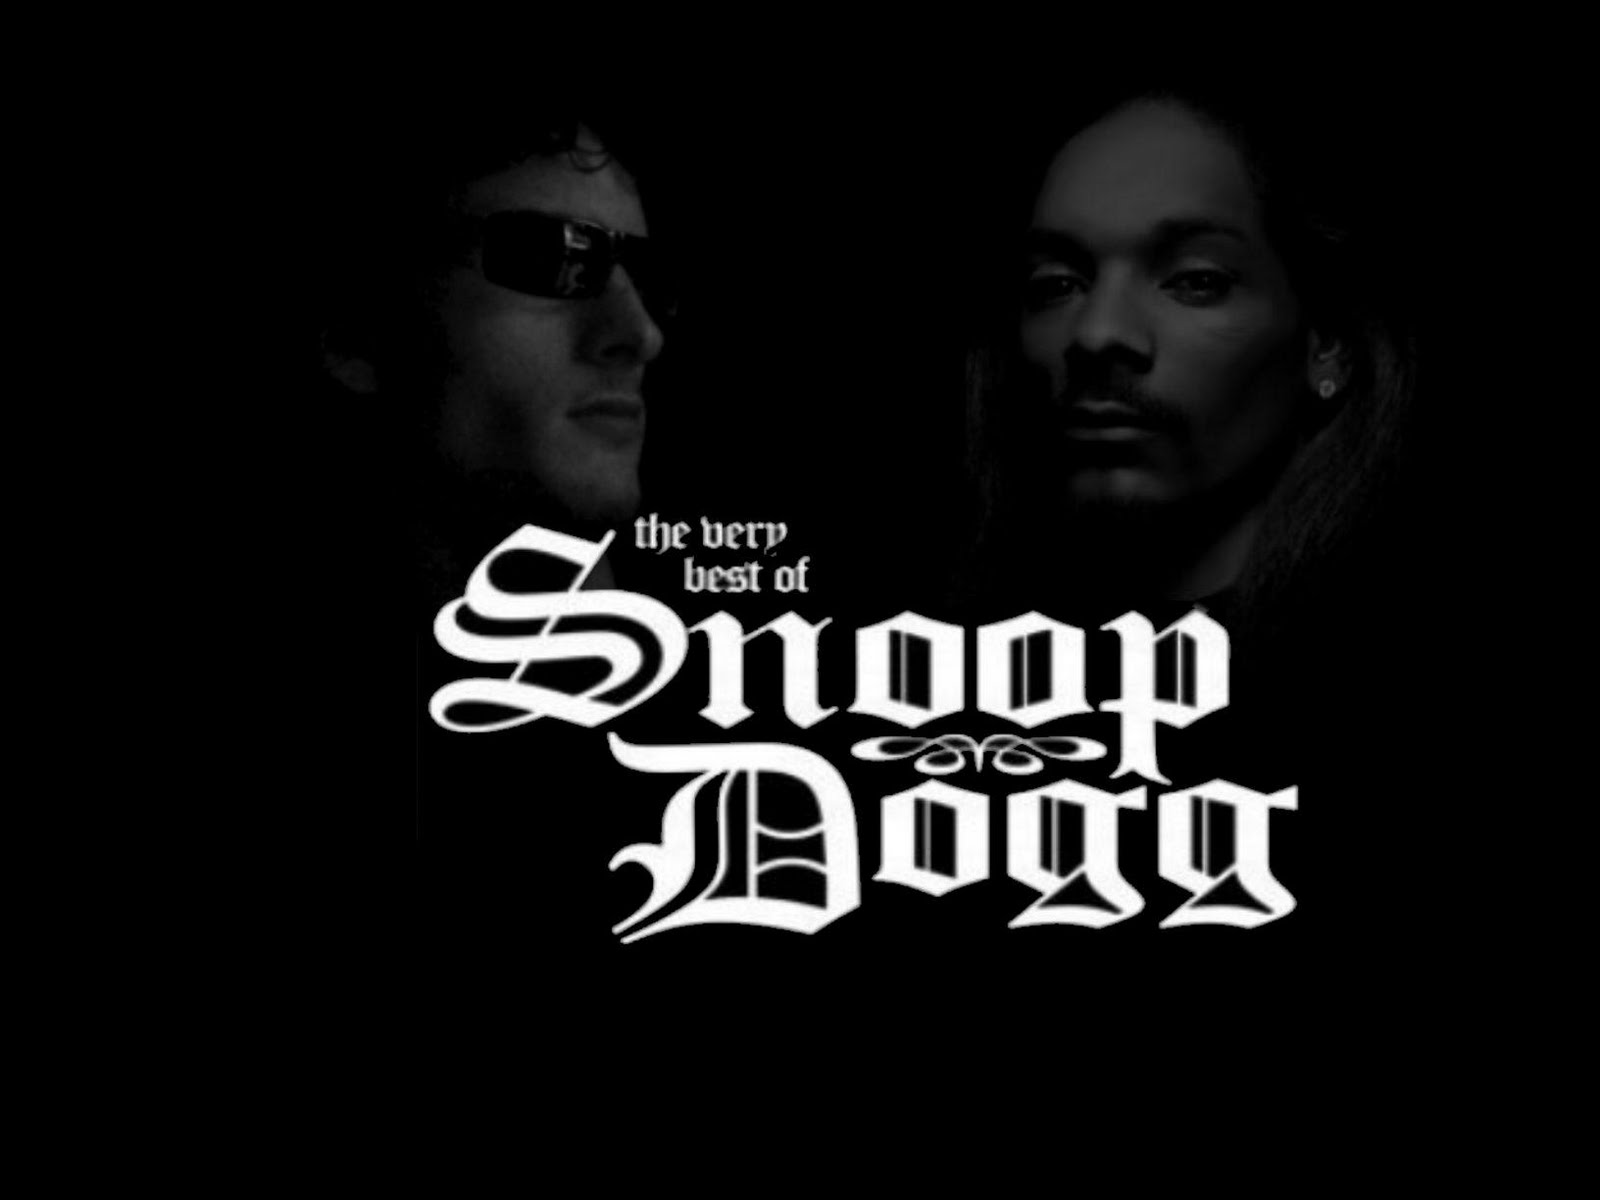 snoop-dog-wallpaper